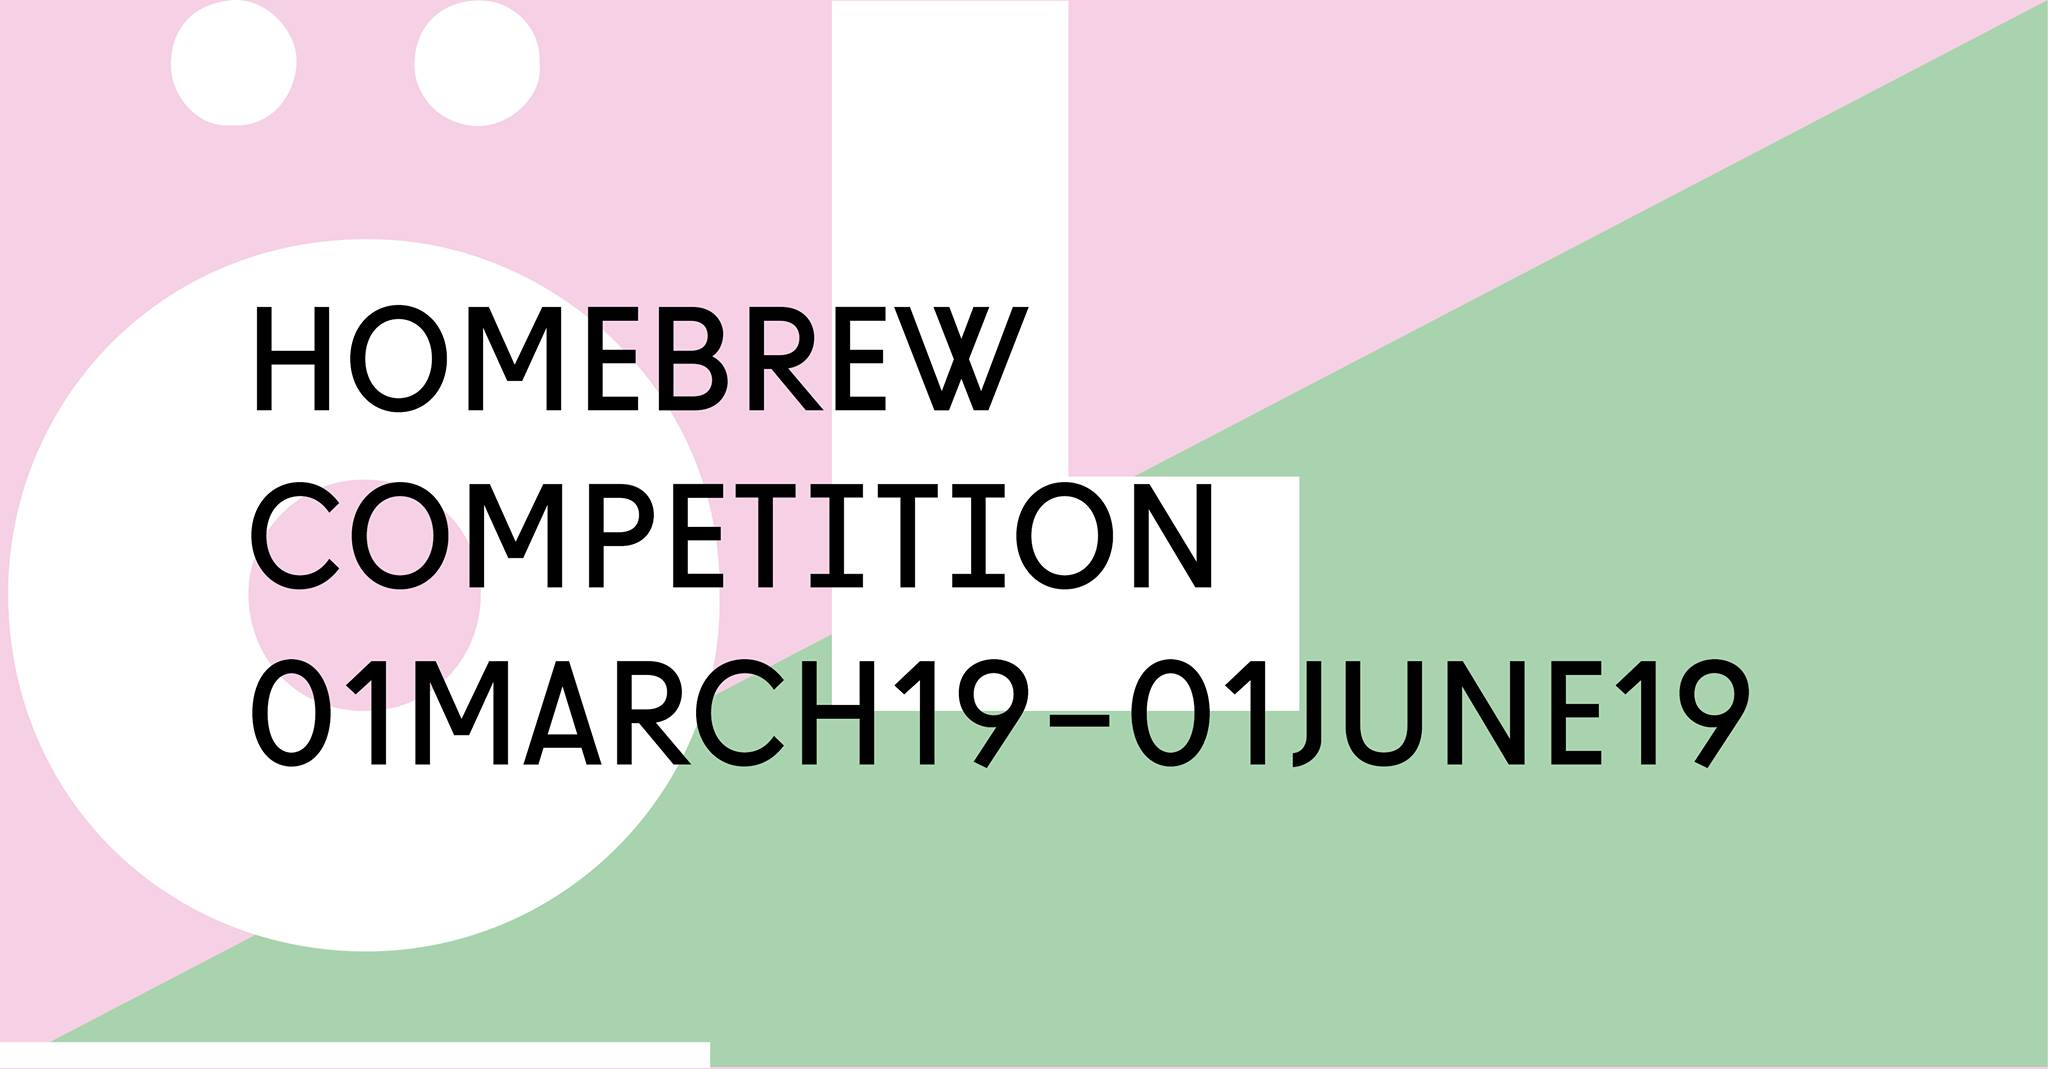 ÖL Homebrew Competition -